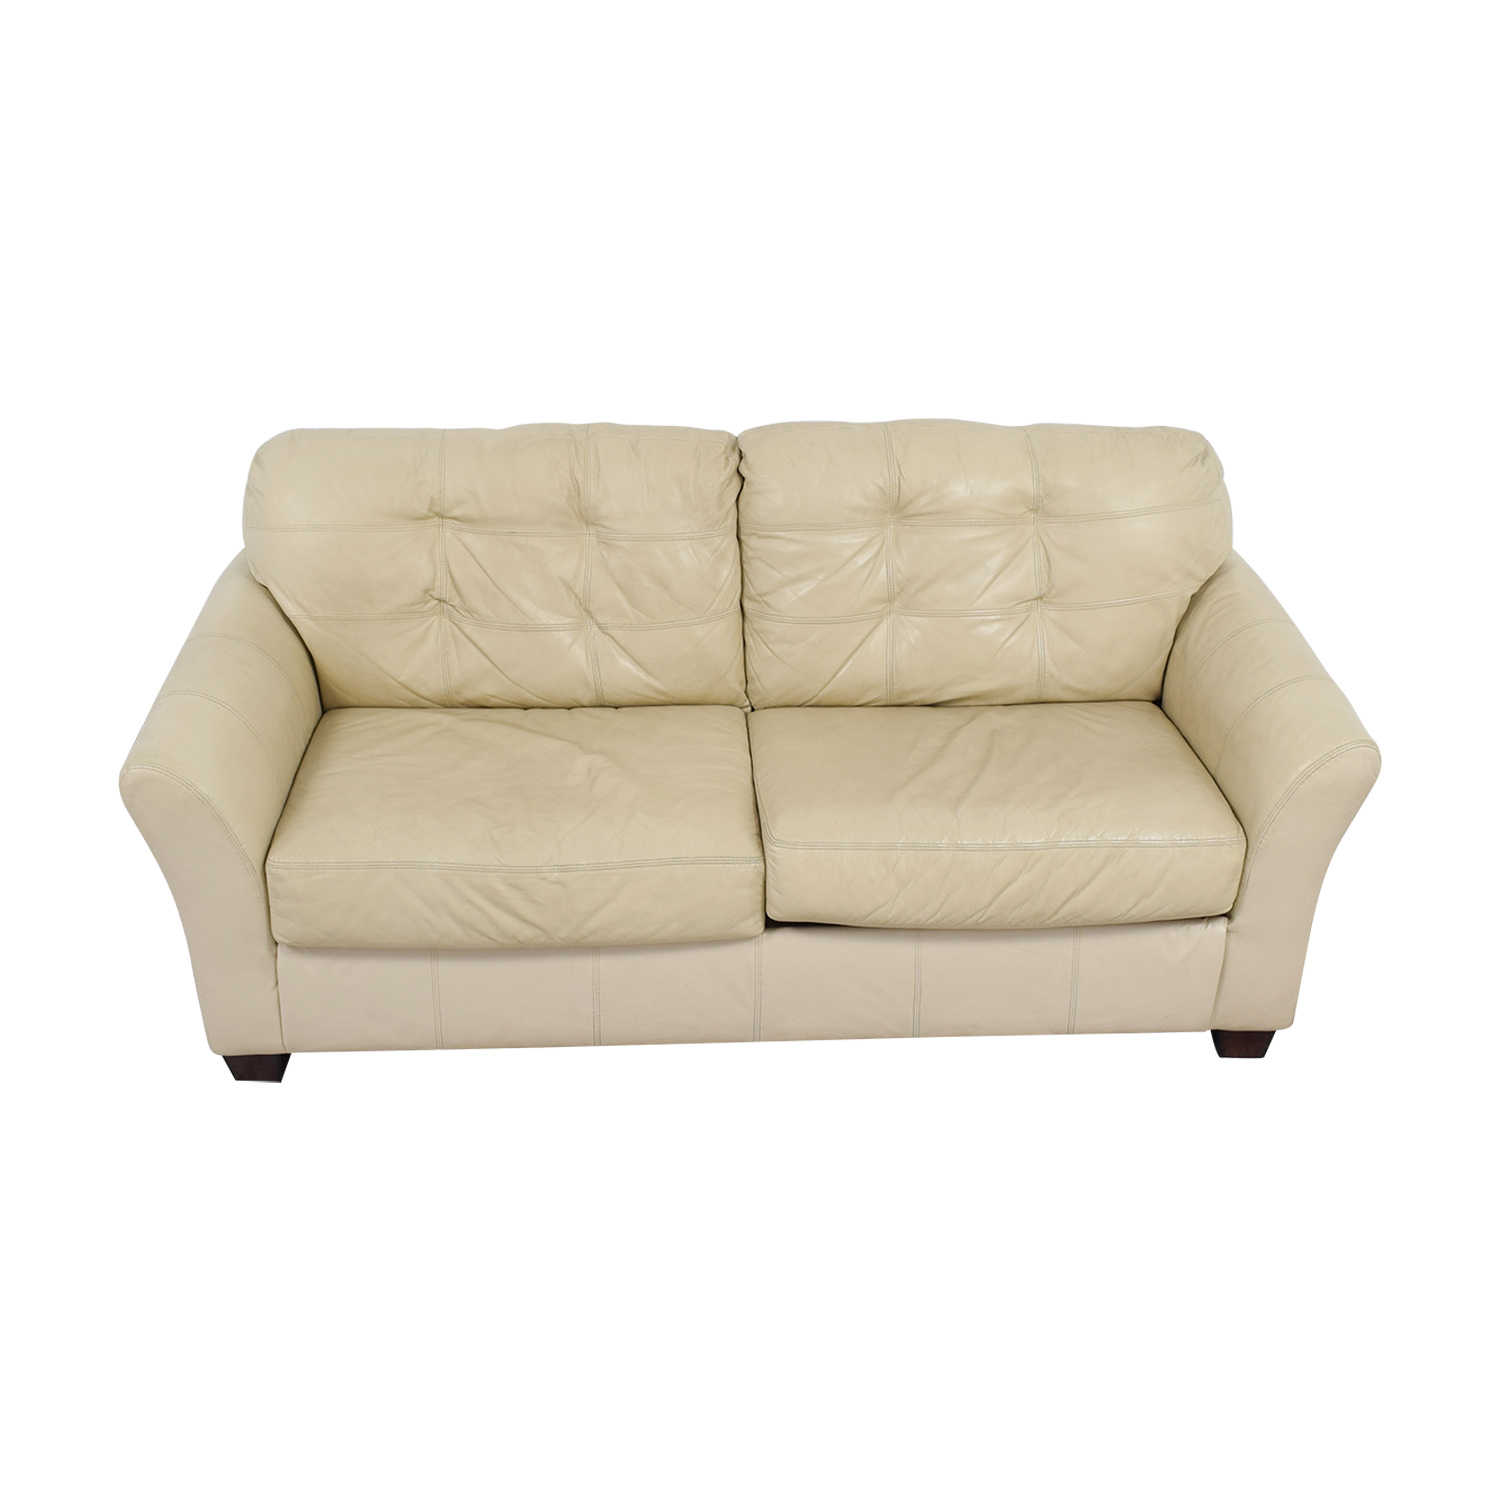 Used sofa and loveseat sofa reclining sets set deals couch for Sofa set deals